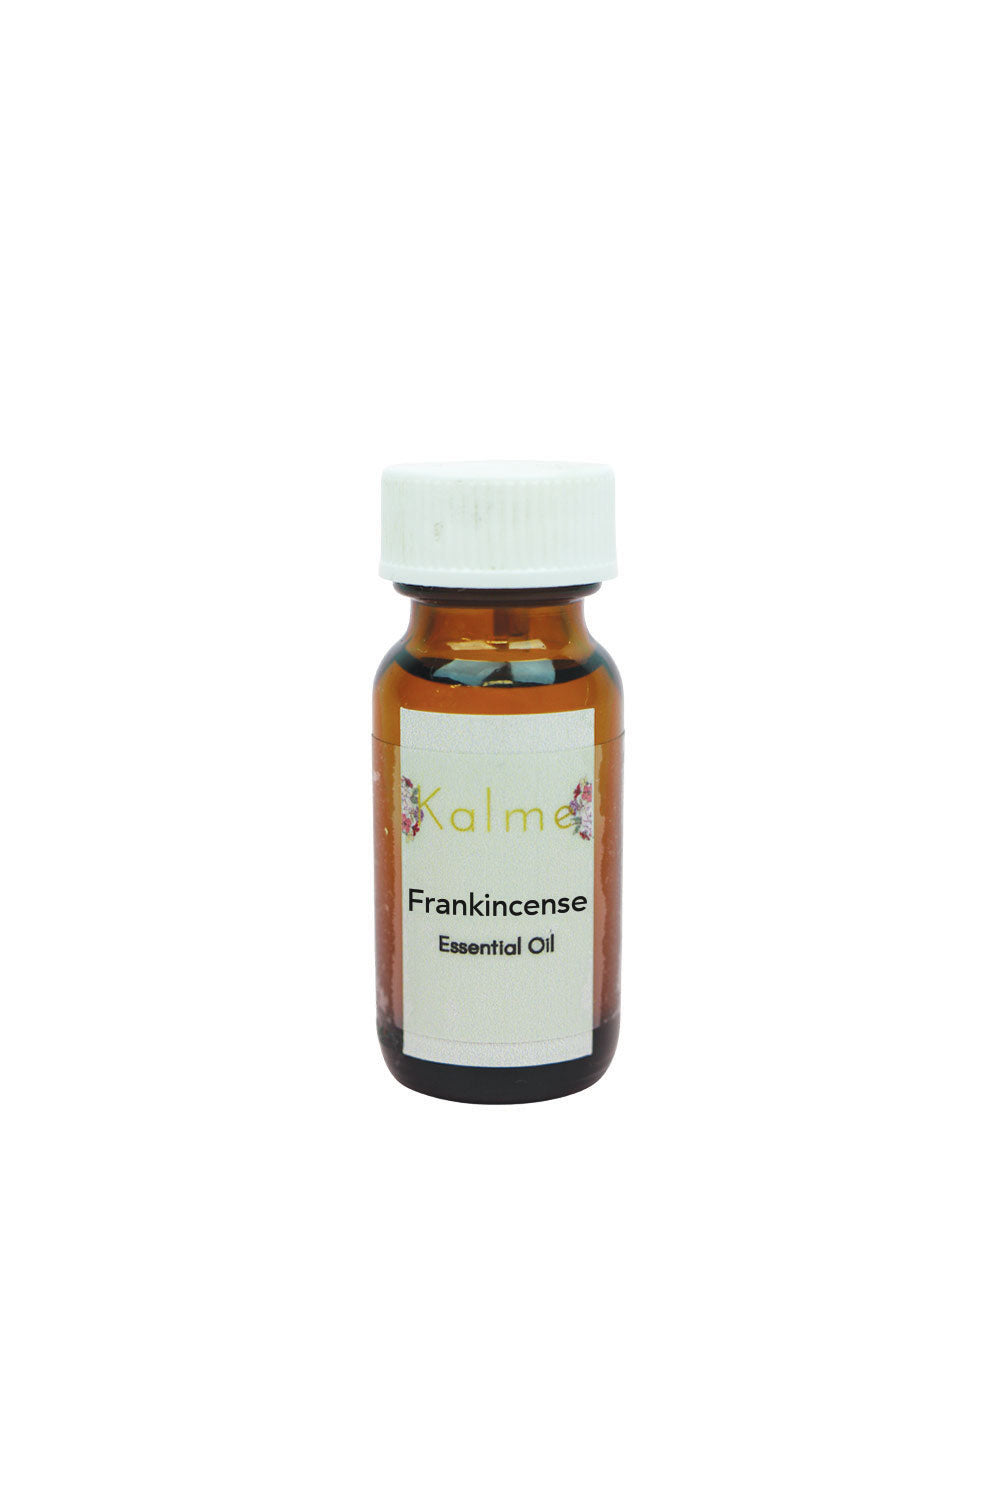 Kalme Essential Oil-Frankincense - Kabana Shop